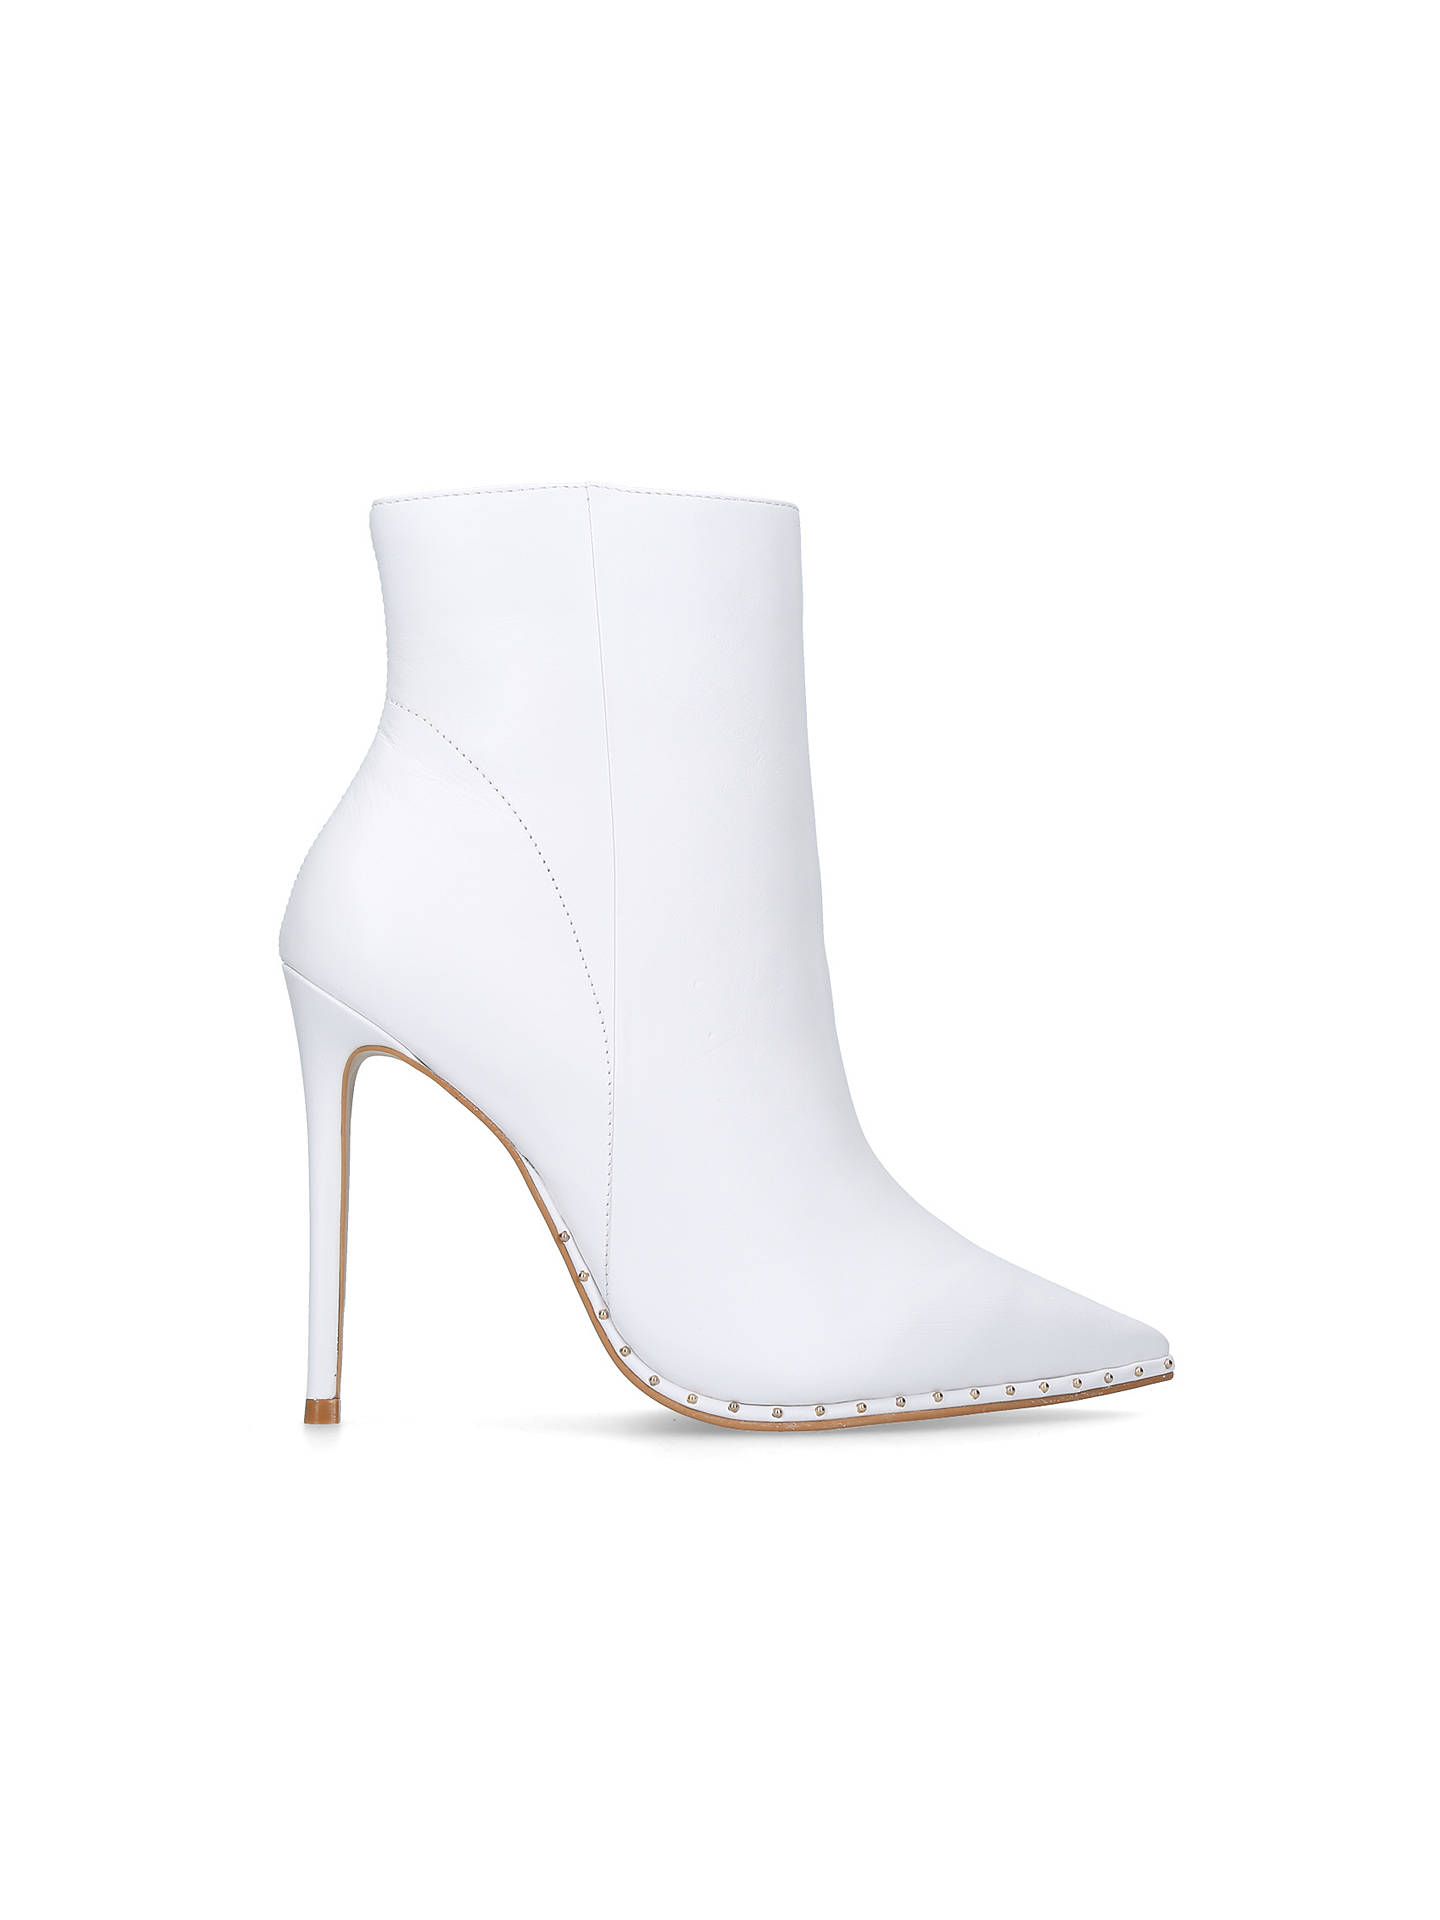 Buy Carvela Spectacle Stiletto Heeled Pointed Toe Ankle Boots, White Leather, 3 Online at johnlewis.com